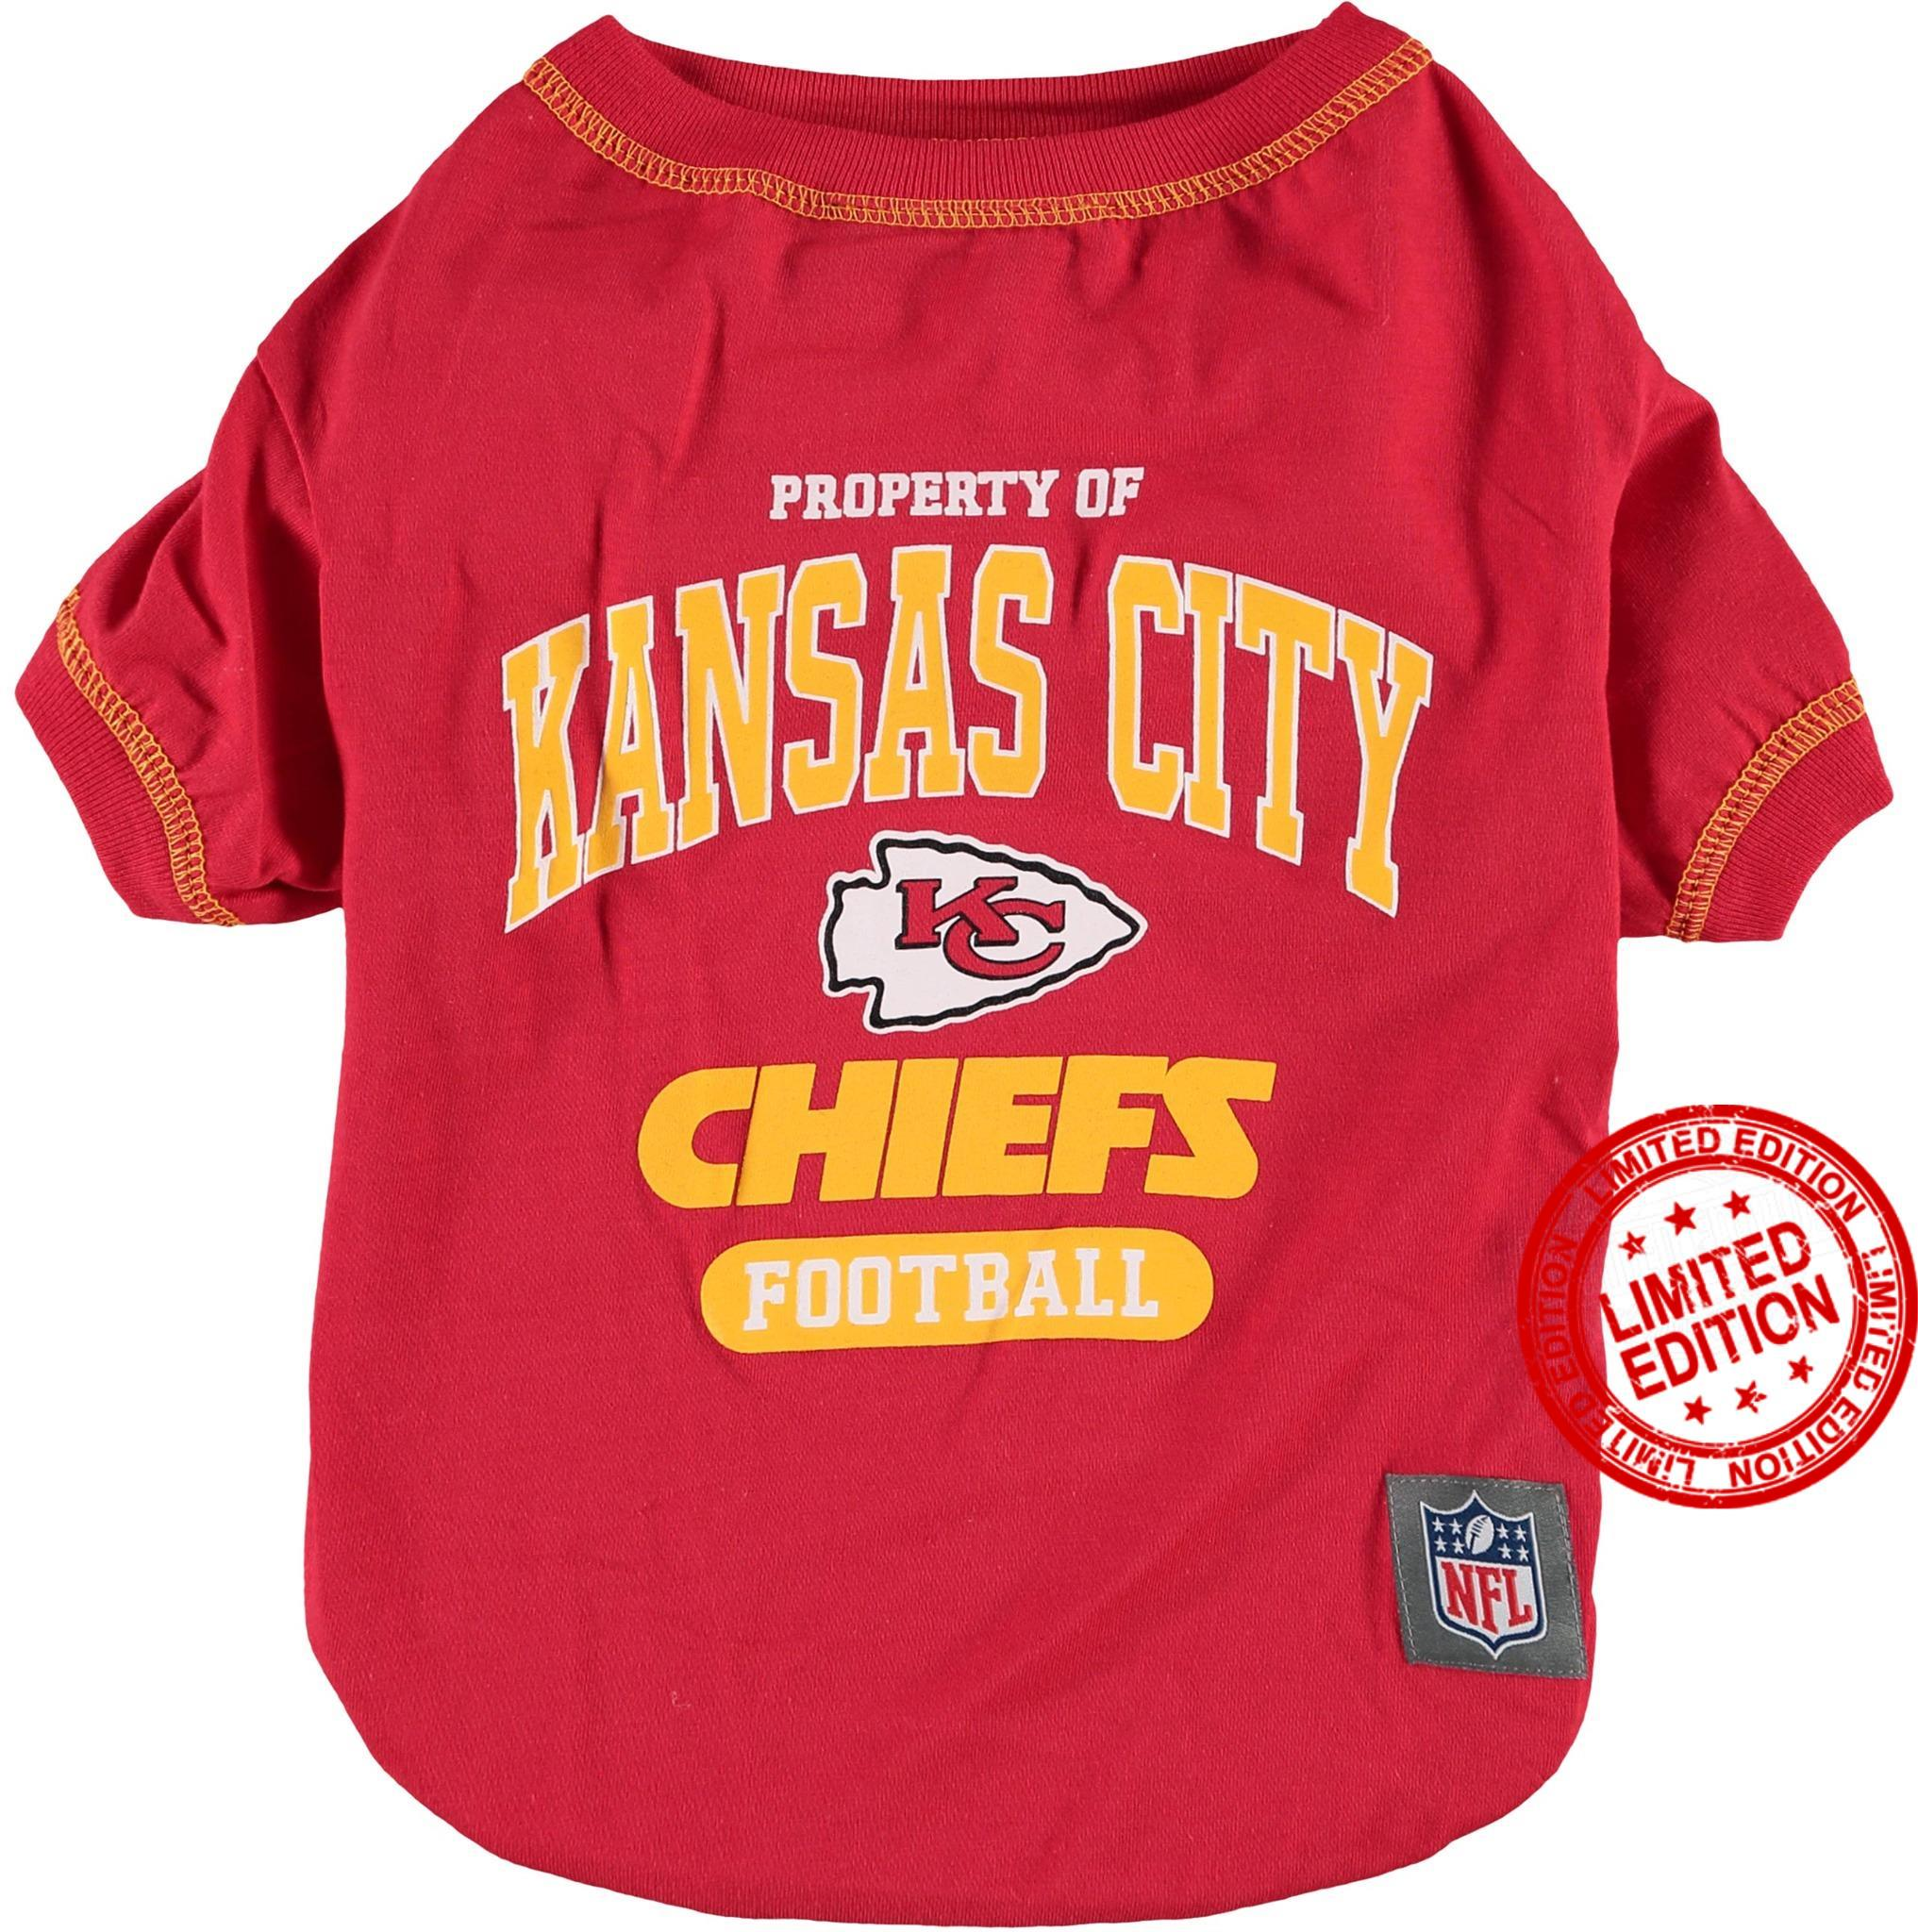 Property Of Kansas City Chiefs Football Shirt